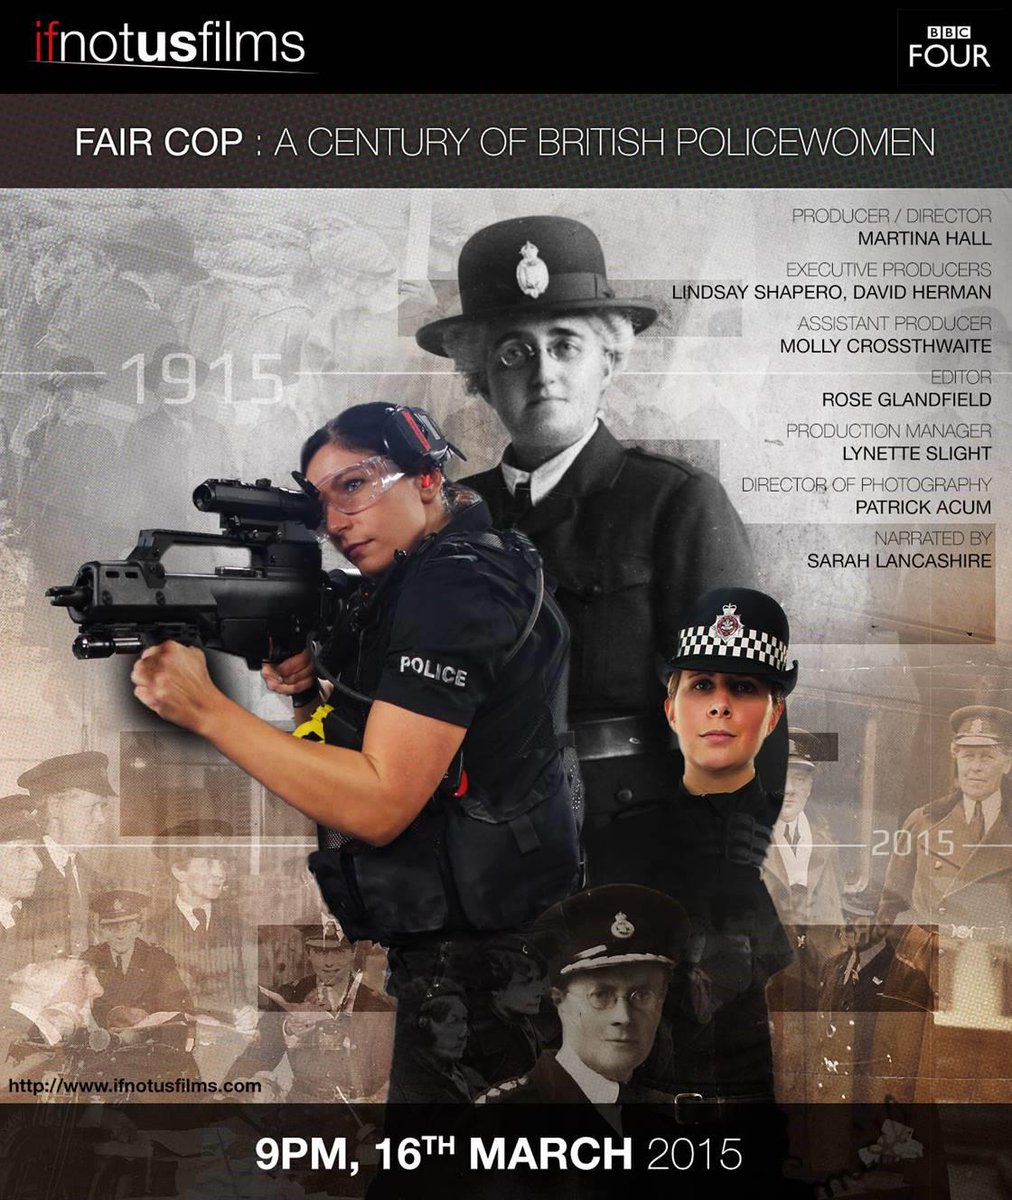 'A Century of British Policewomen' airs 9pm tonight on BBC4. Has interviews with some of the top women in policing http://t.co/DfSiJKYx1M